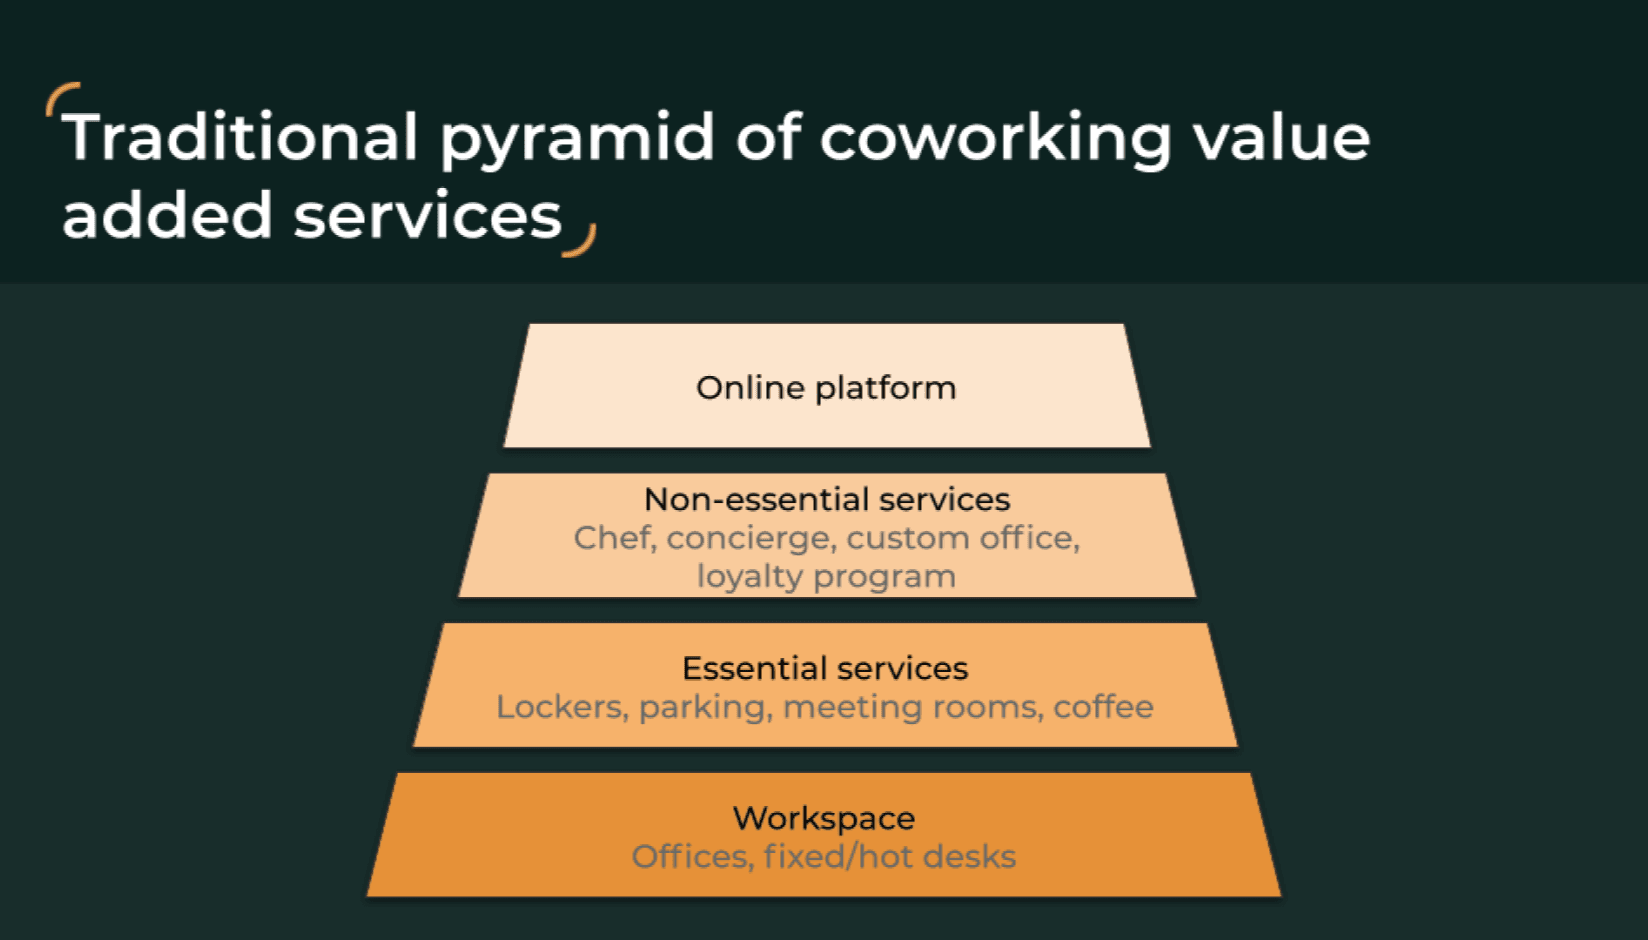 traditional pyramid of coworking value added services